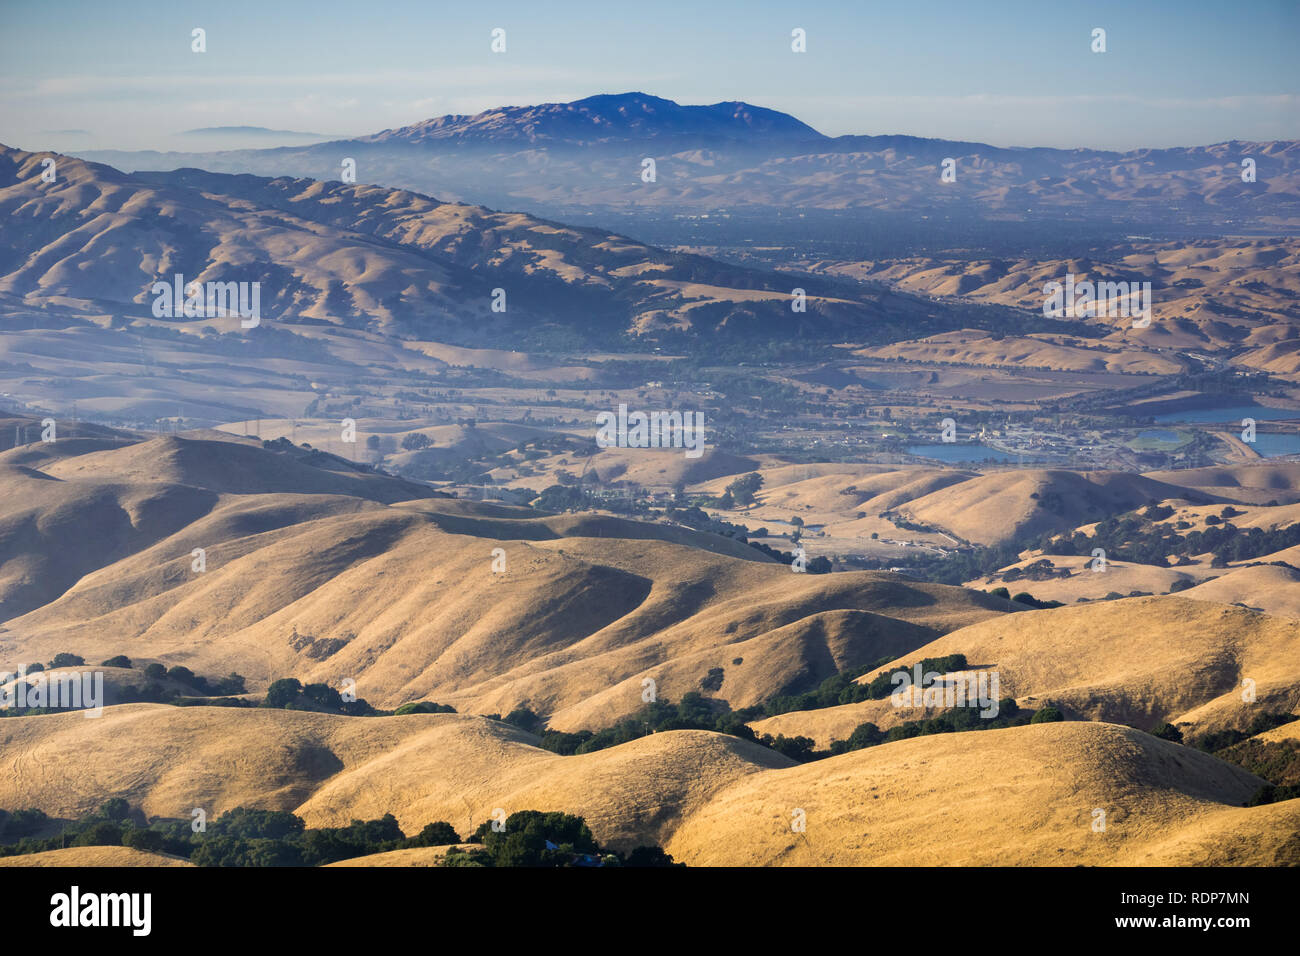 Check out my list of attractions and hikes in mt diablo state park, complete with pictures and information on the different places you will. View Towards Mt Diablo At Sunset From Mission Peak East San Francisco Bay Area California Stock Photo Alamy